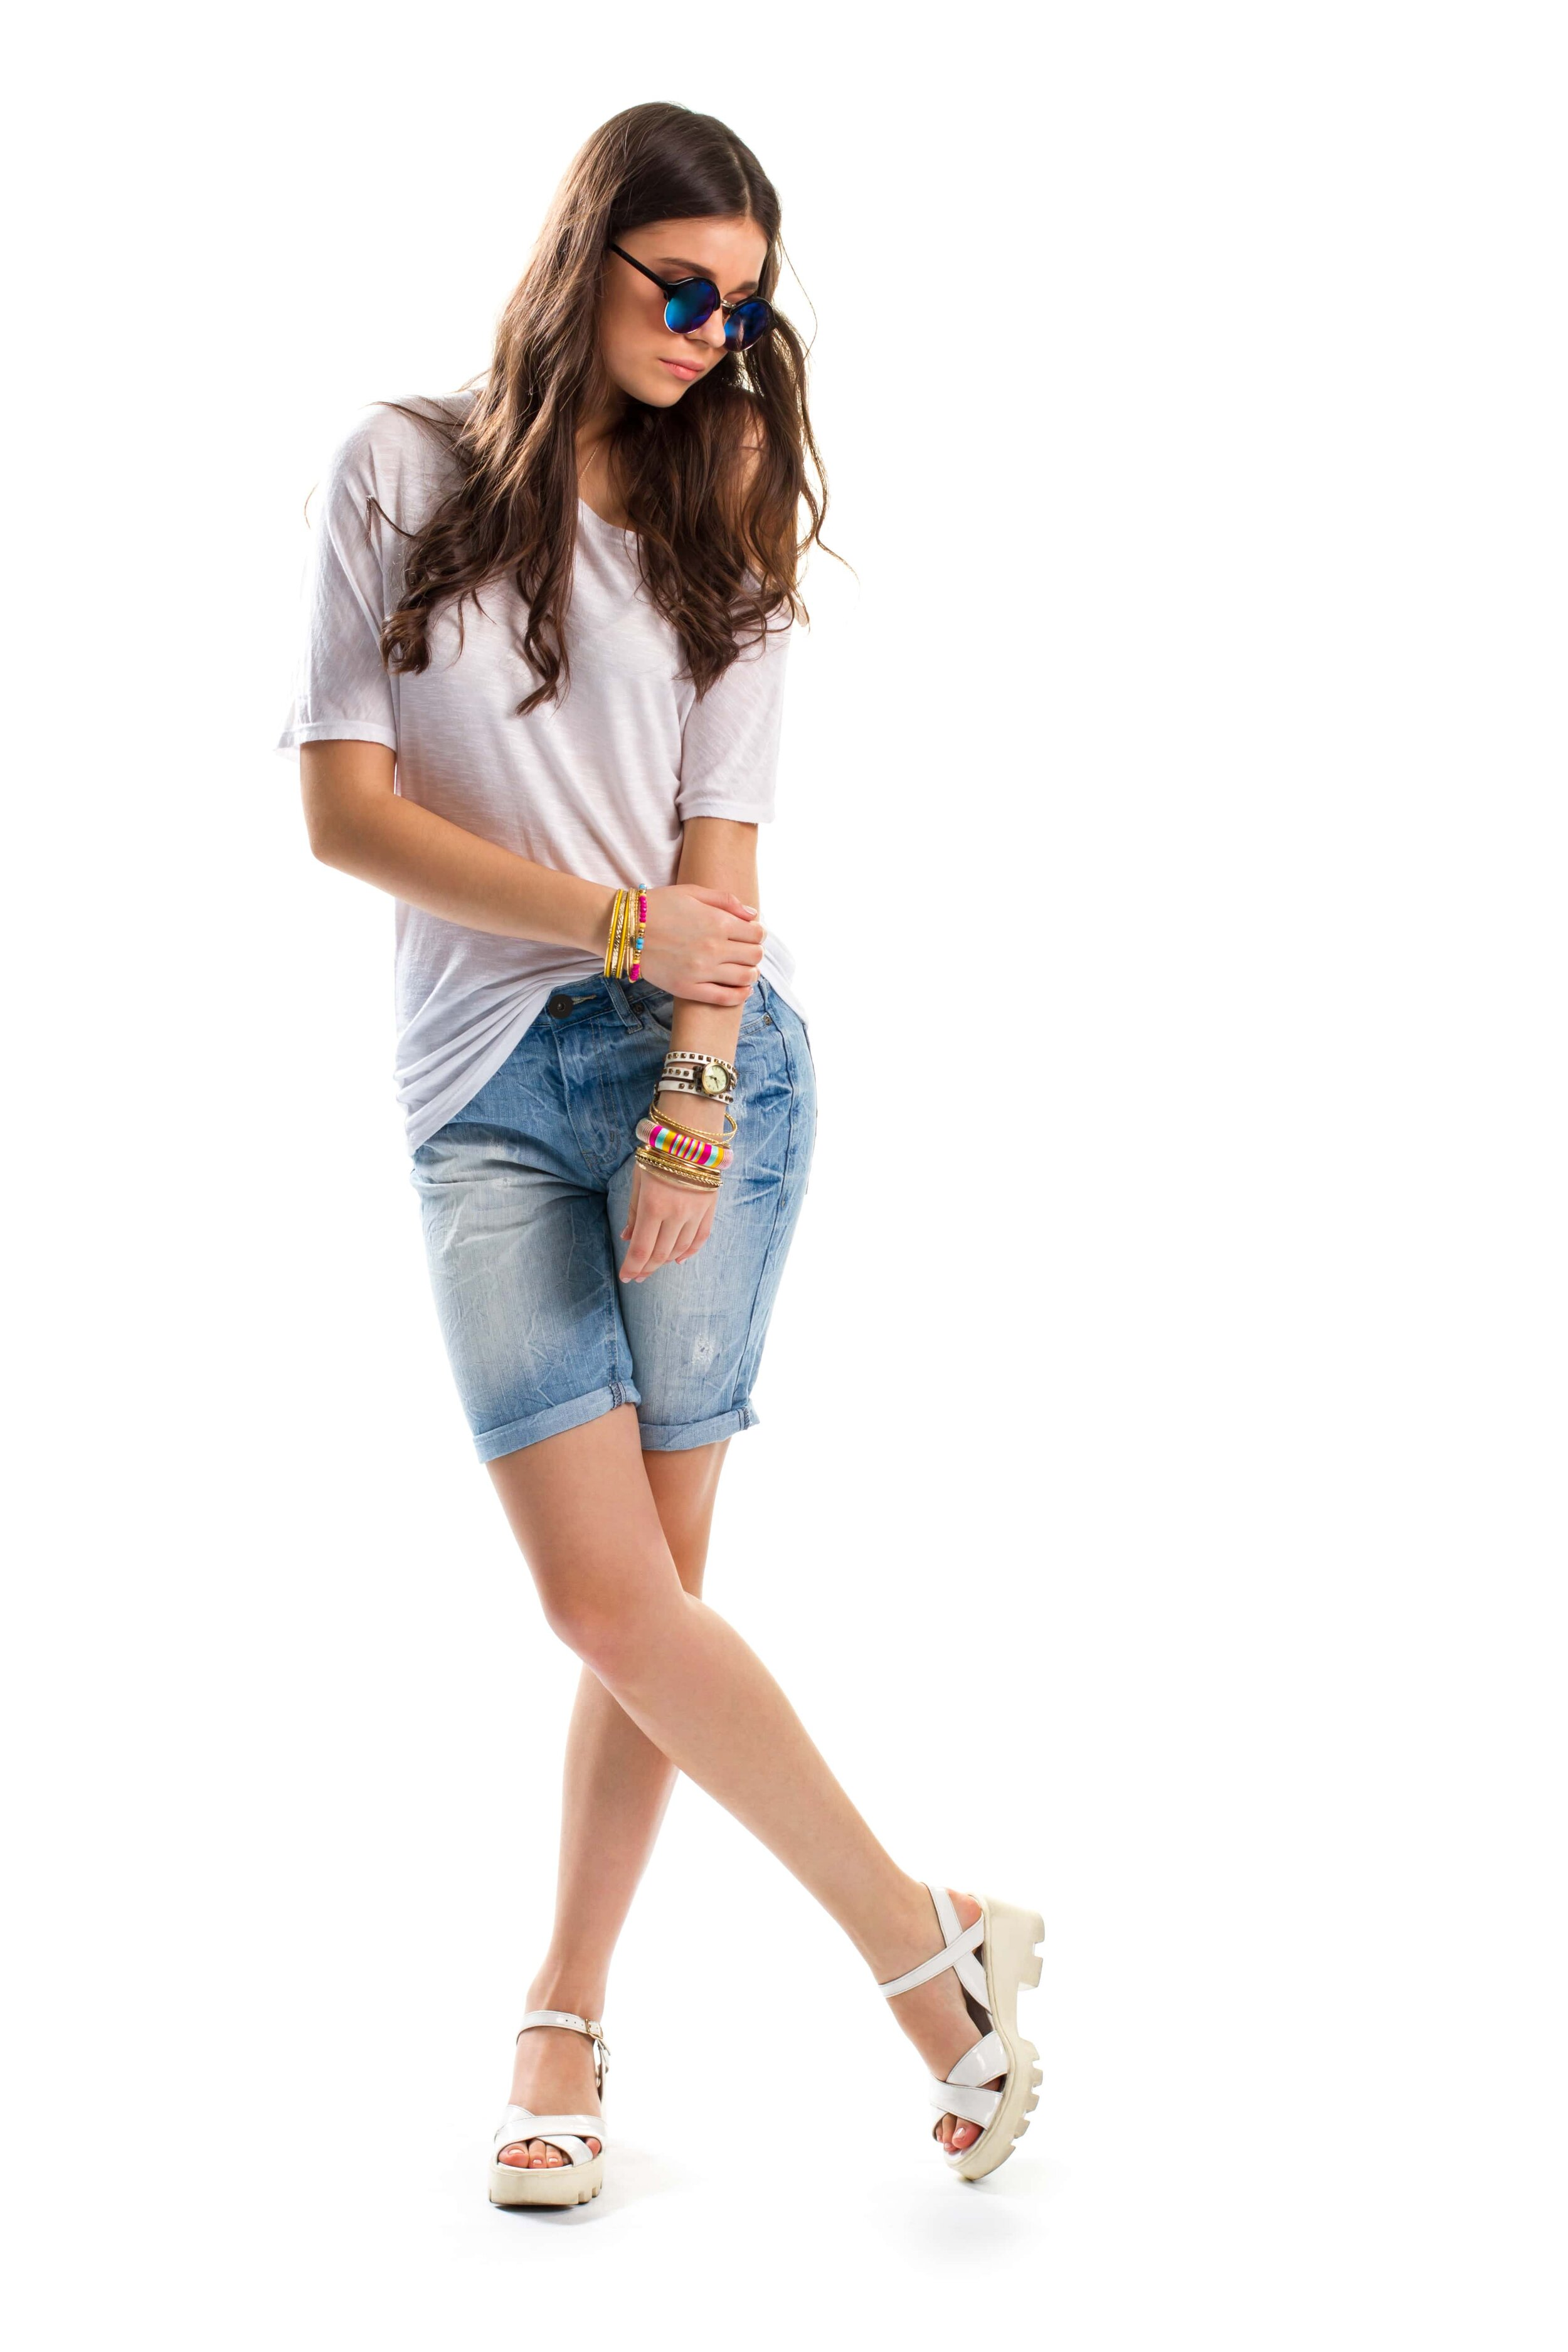 Bermuda shorts outfits women's fashion trend spring 2020. #springtrends #2020fashion #shorts #denim #casual #white #tee #tshirt #sandals #sunglasses #sunnies #bangles #bracelets